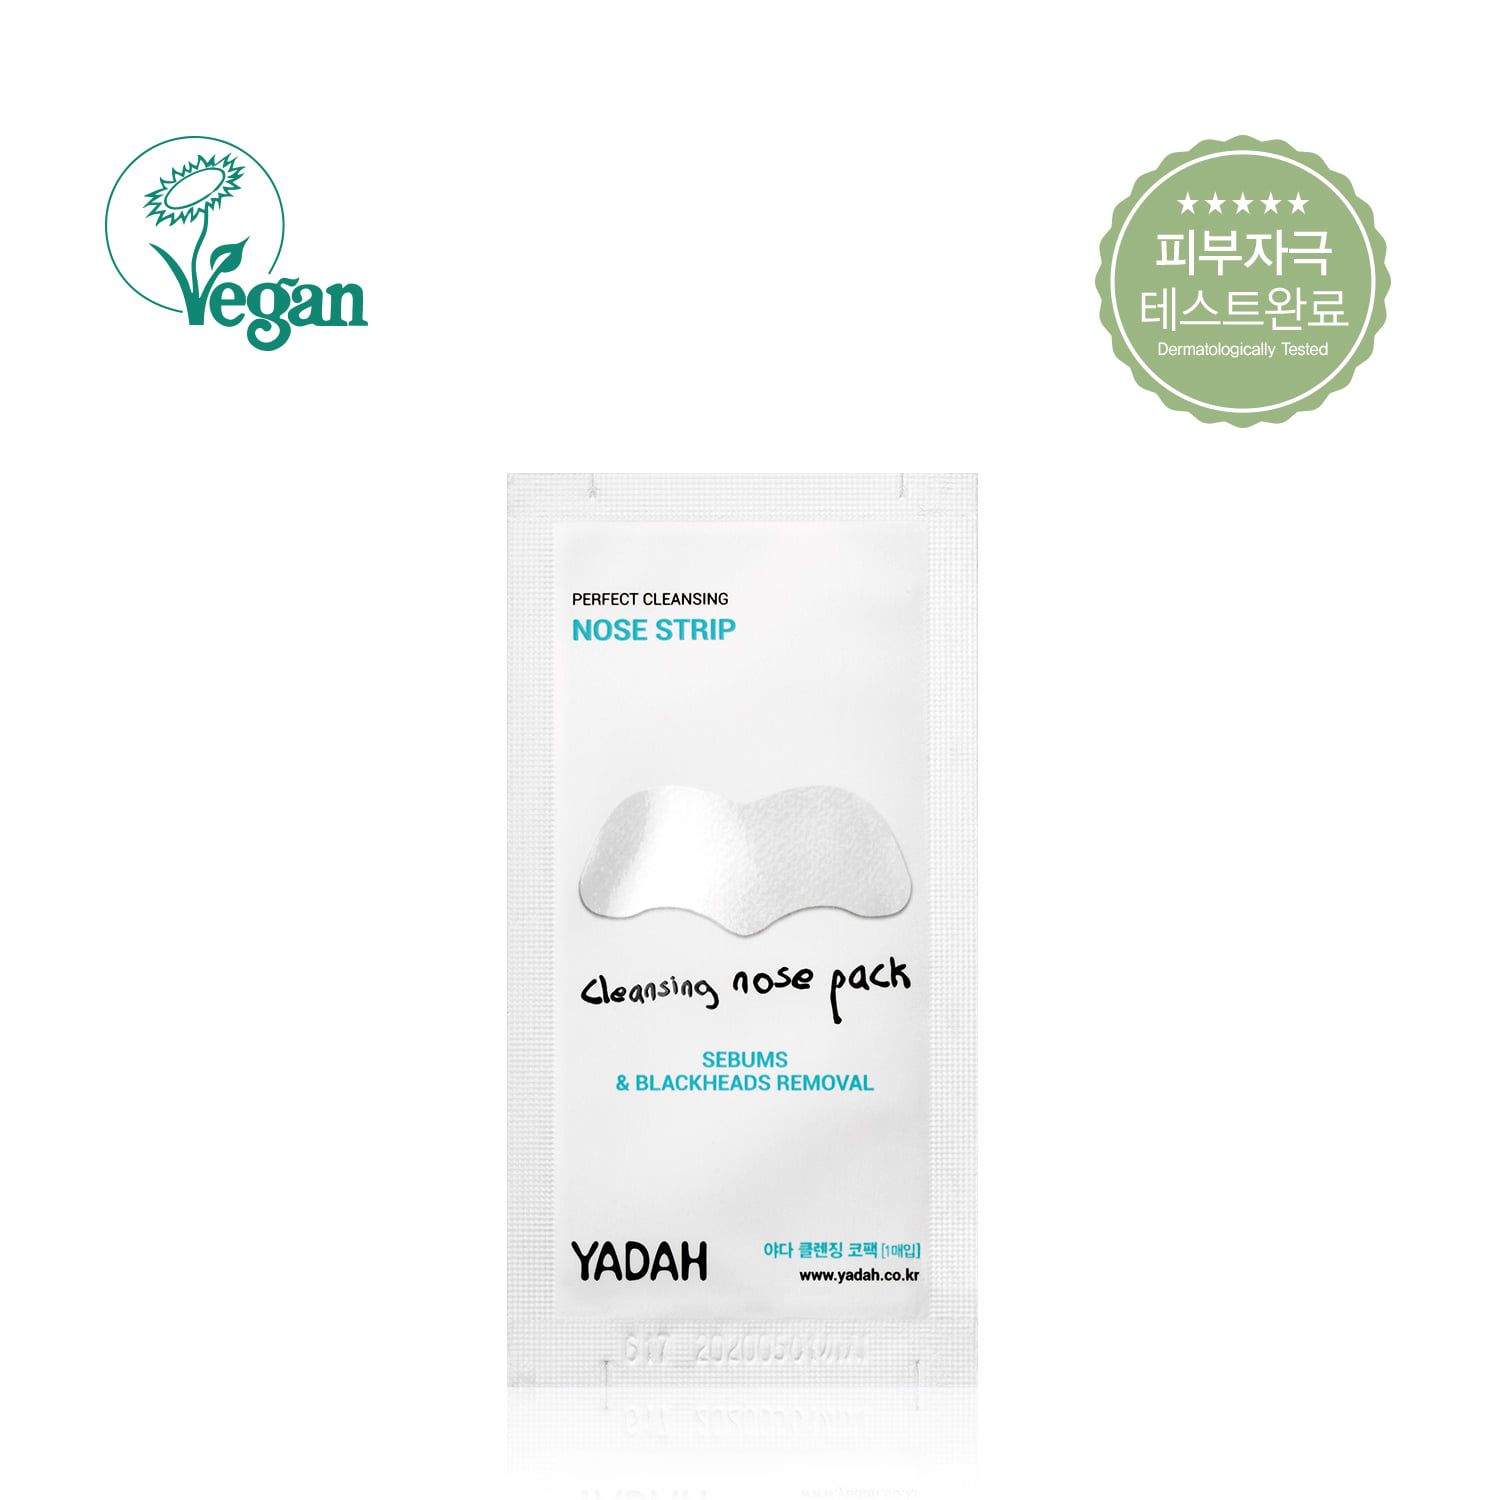 CLEANSING NOSE PACK